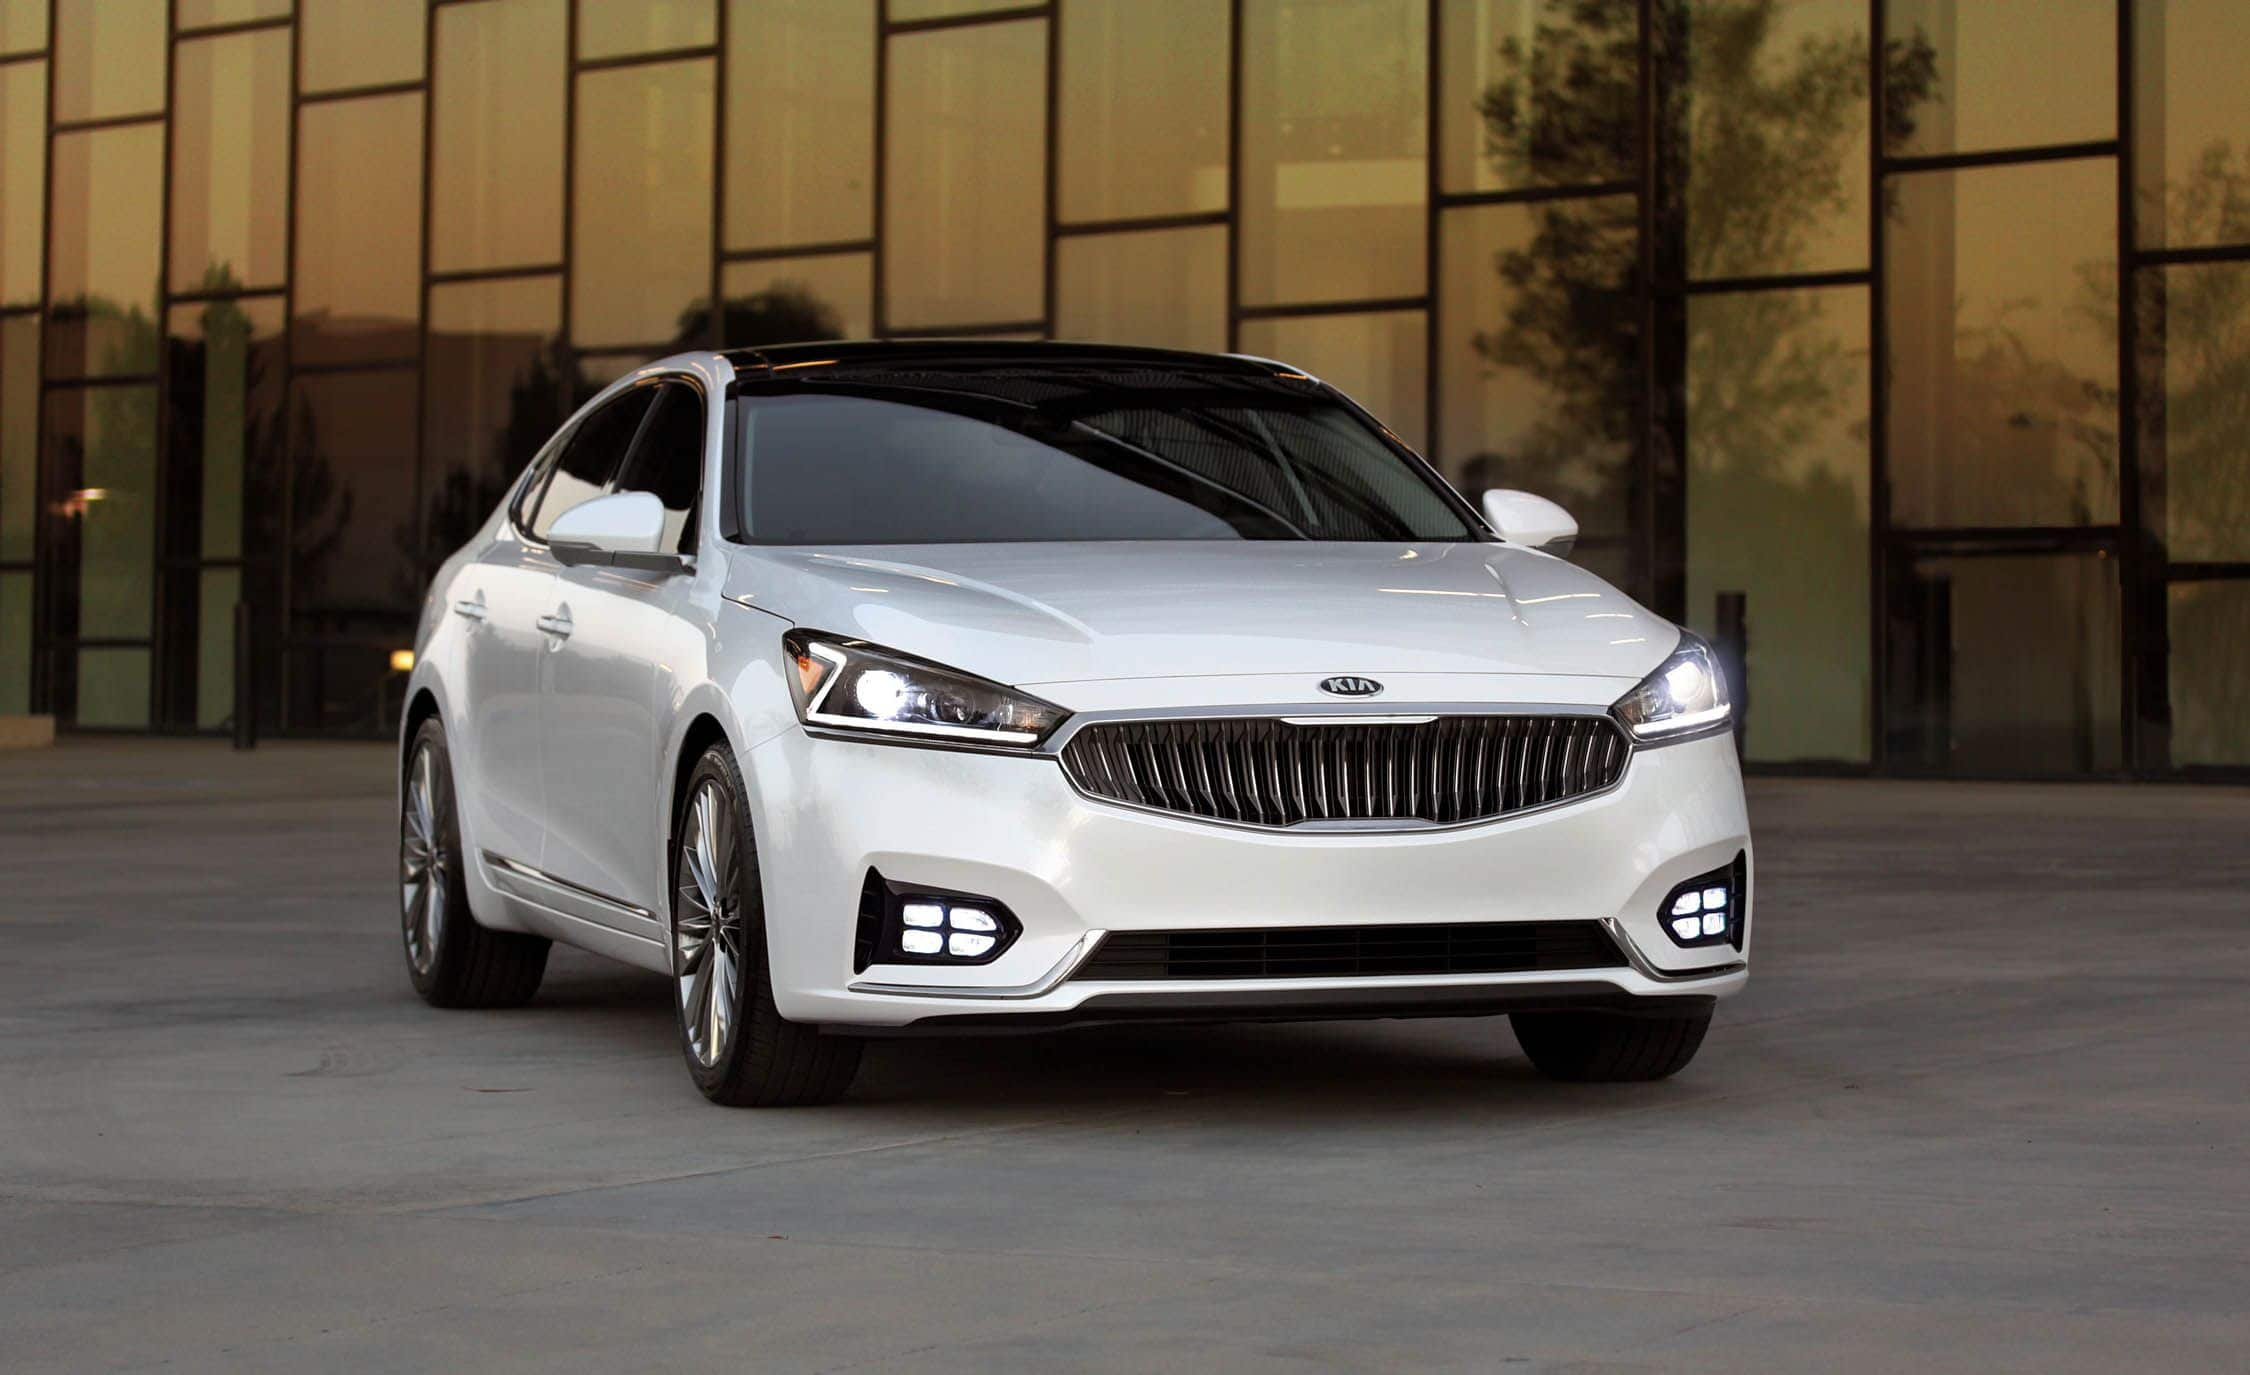 33 The Best 2019 All Kia Cadenza Rumors